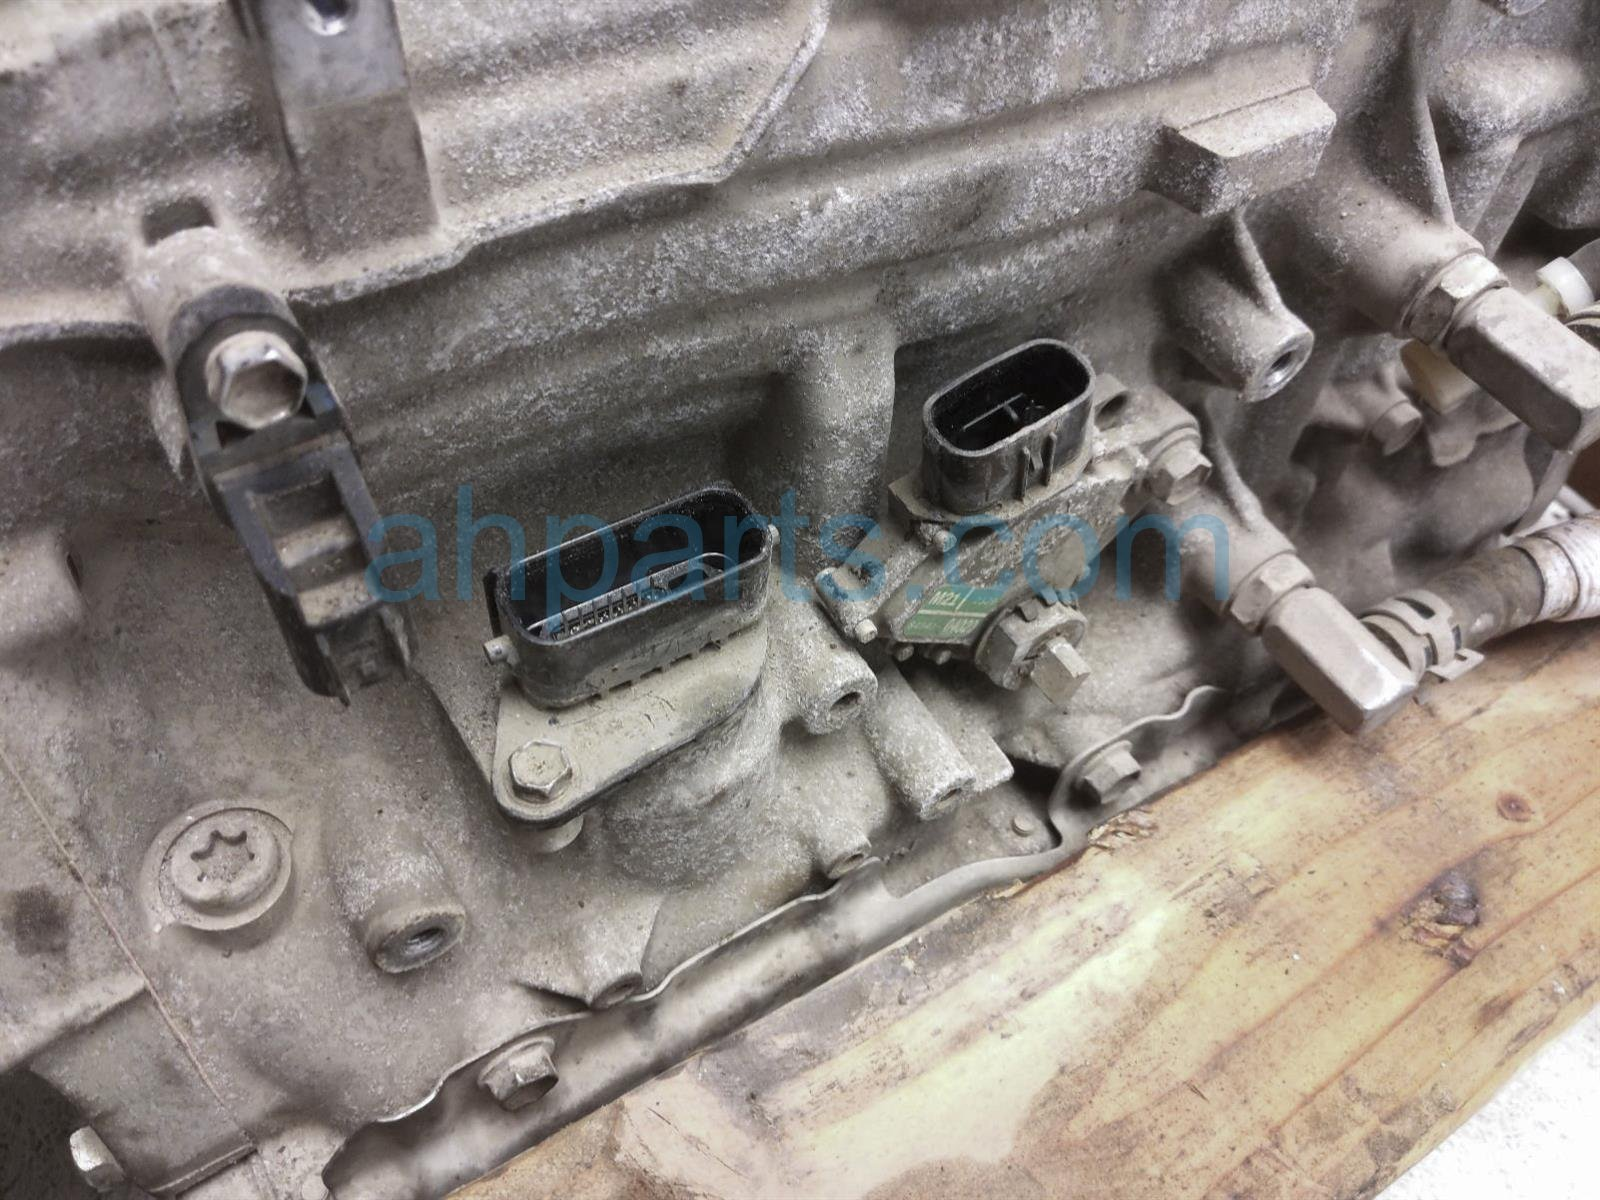 2017 Toyota Tacoma At Transmission = 70k Miles 35010 04120 84 Replacement